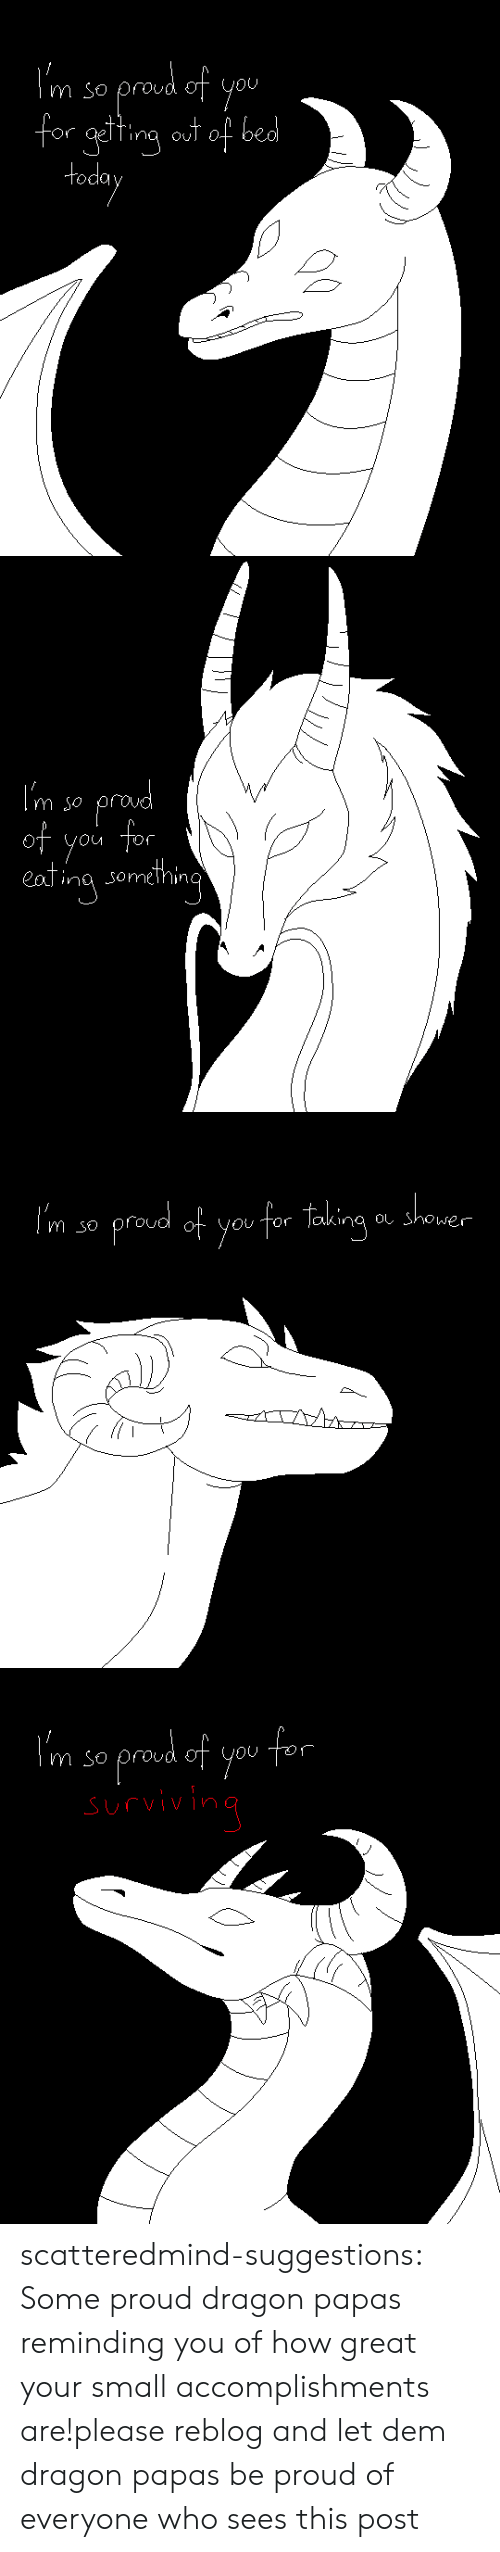 So Proud Of You: OU  or gelTina oul O  todo   m so  of  you tor  ina somehin   m so proud of youtor laking Shower  OUTOr joking oしShower   m so proud of you scatteredmind-suggestions:  Some proud dragon papas reminding you of how great your small accomplishments are!please reblog and let dem dragon papas be proud of everyone who sees this post